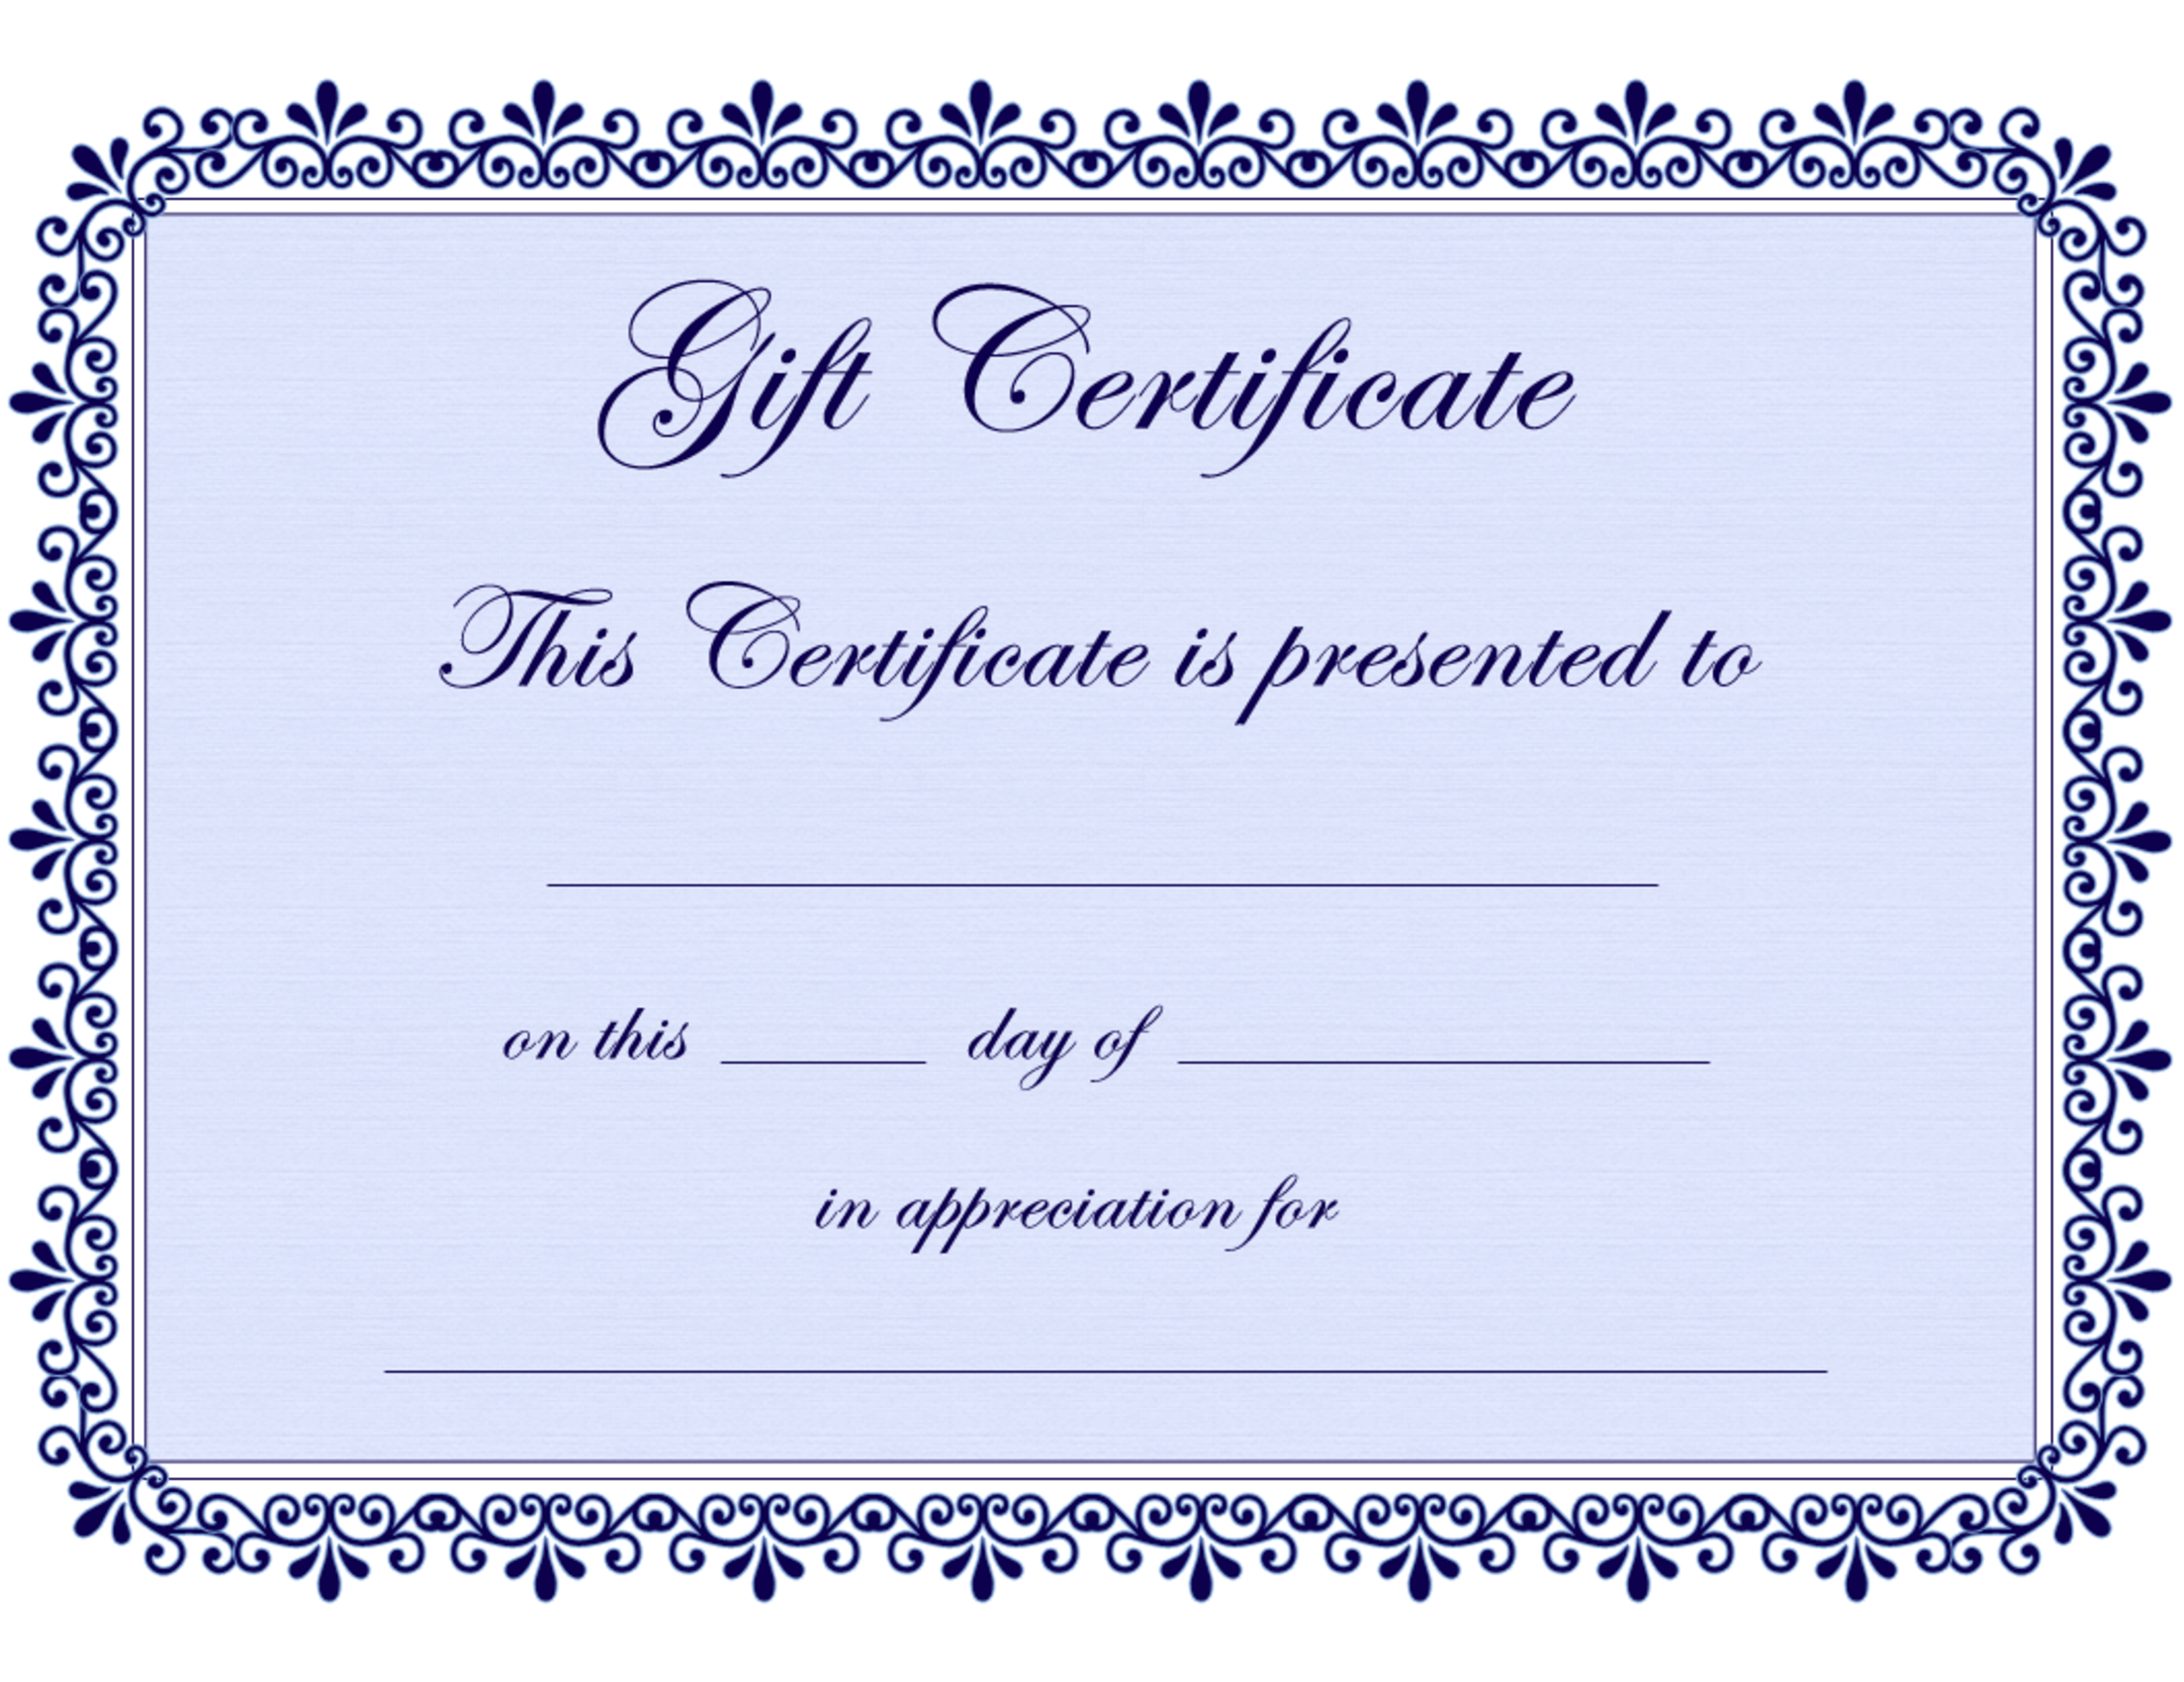 Certificate templates gift certificate template free for Downloadable gift certificate templates